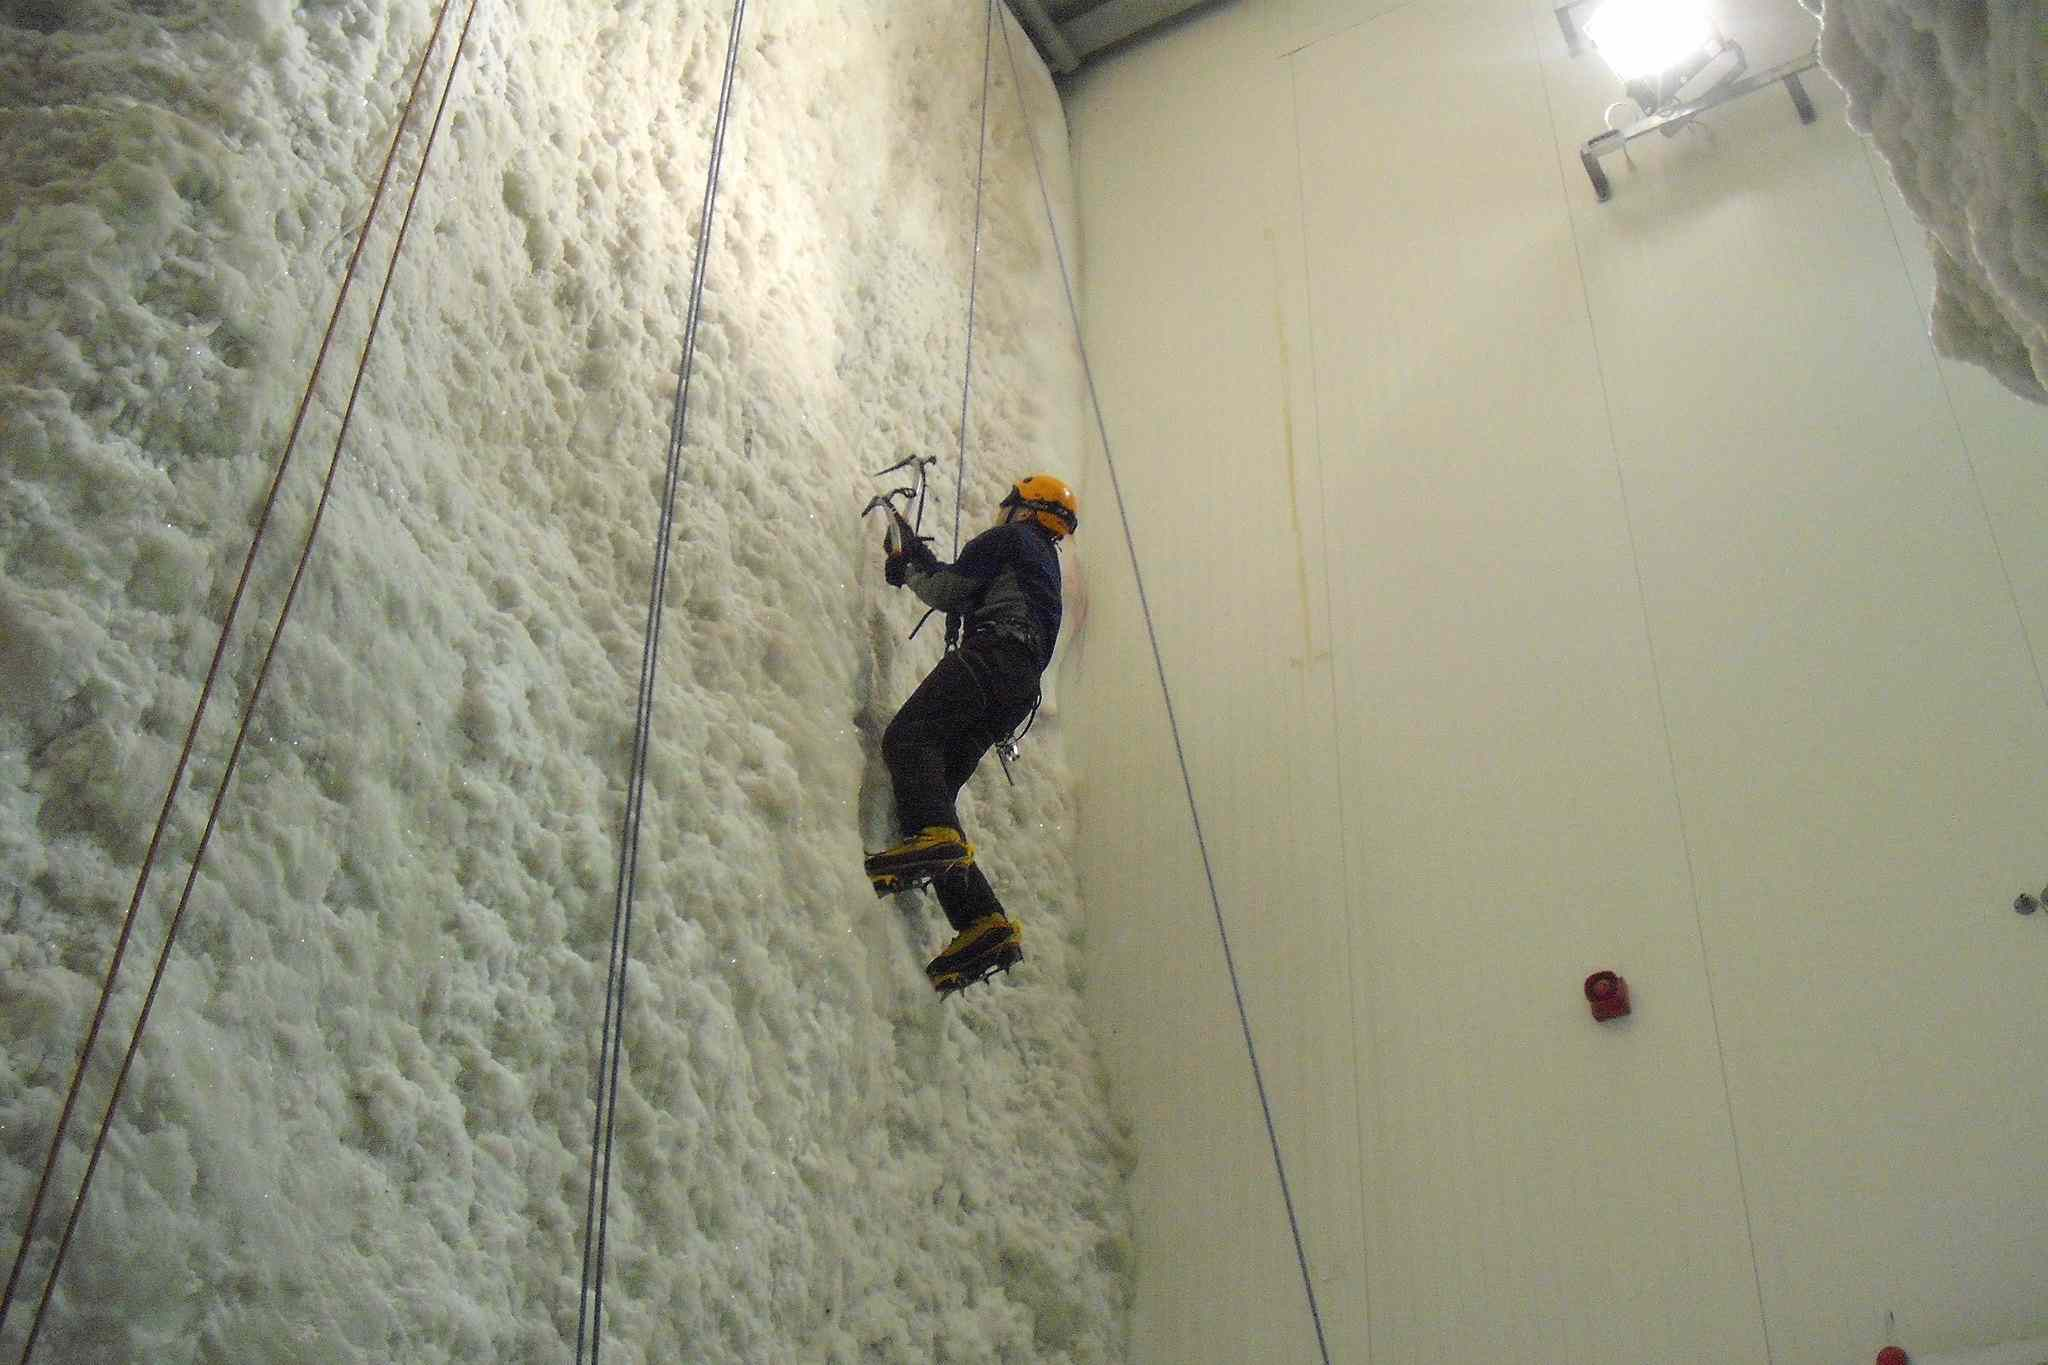 Climber scaling a human-made ice wall inside Scotland's Ice Factor